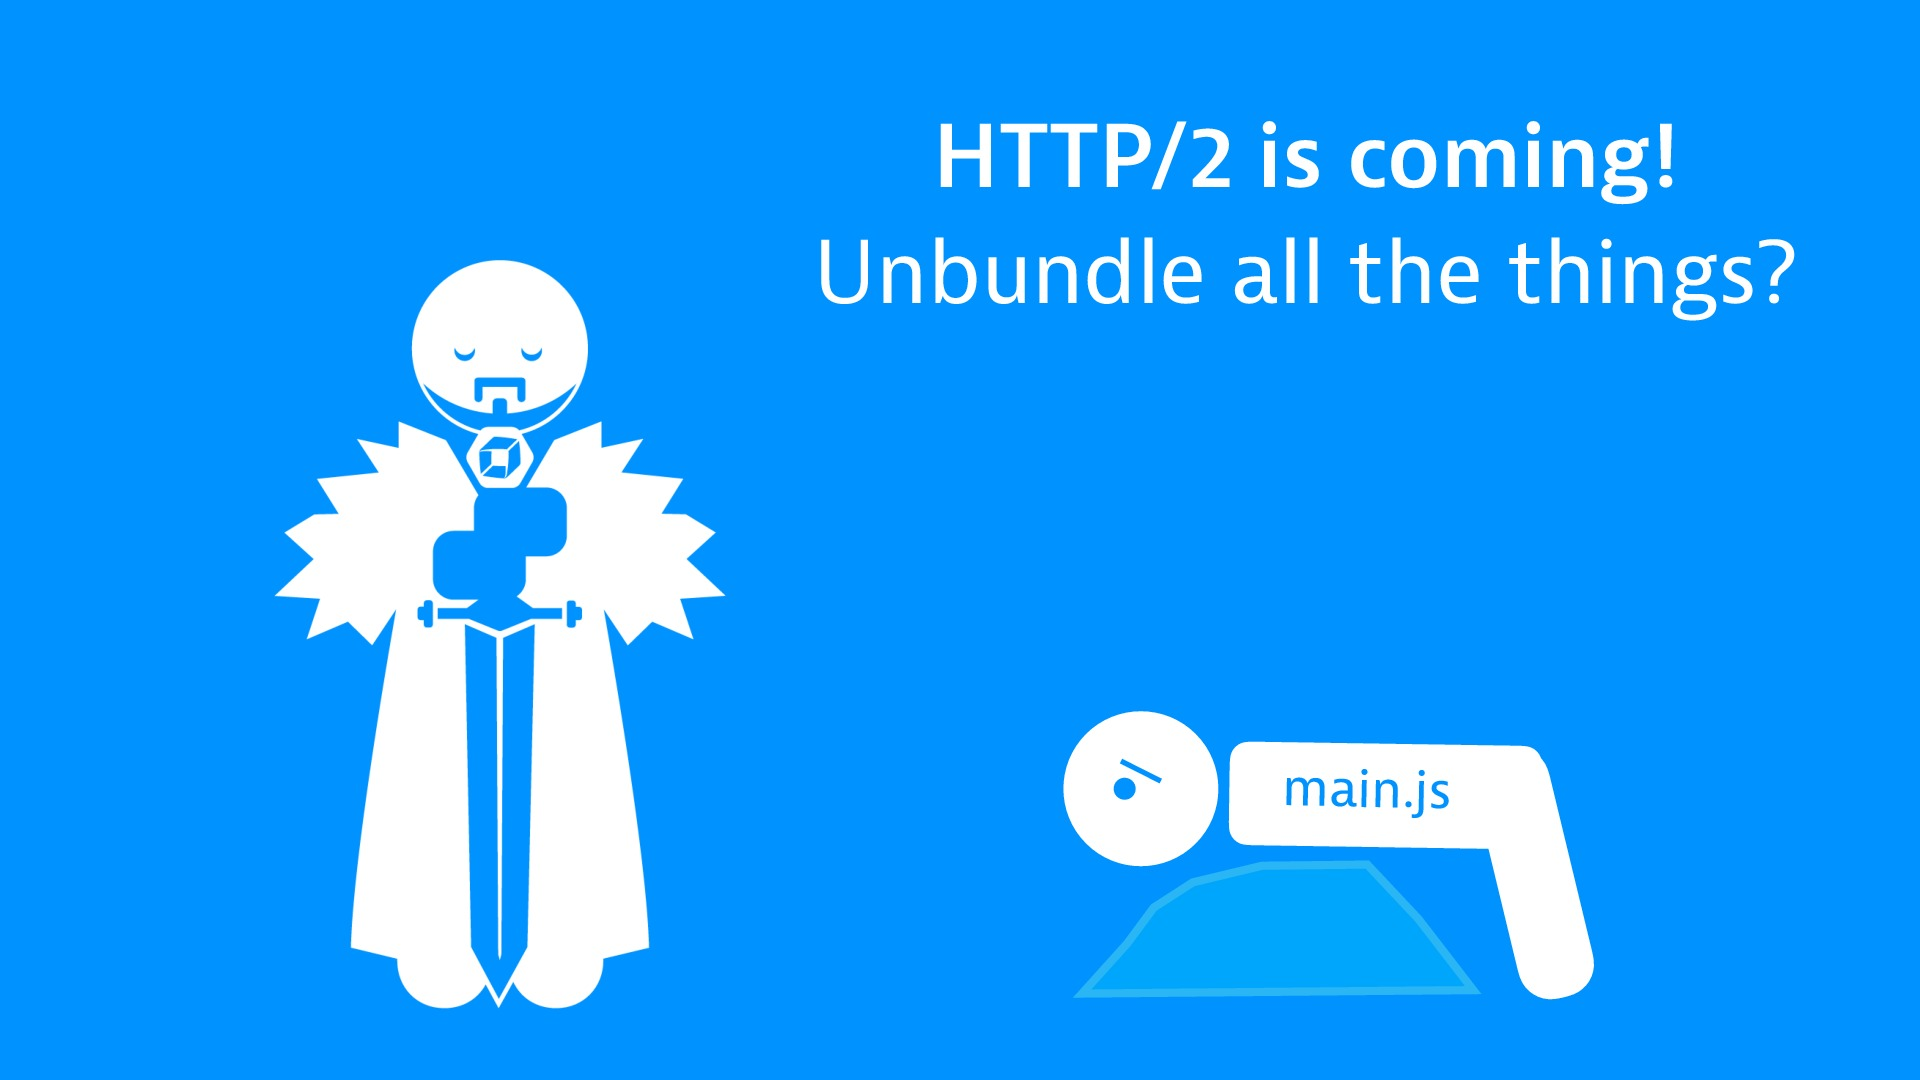 HTTP/2 is coming! Unbundle all the things?